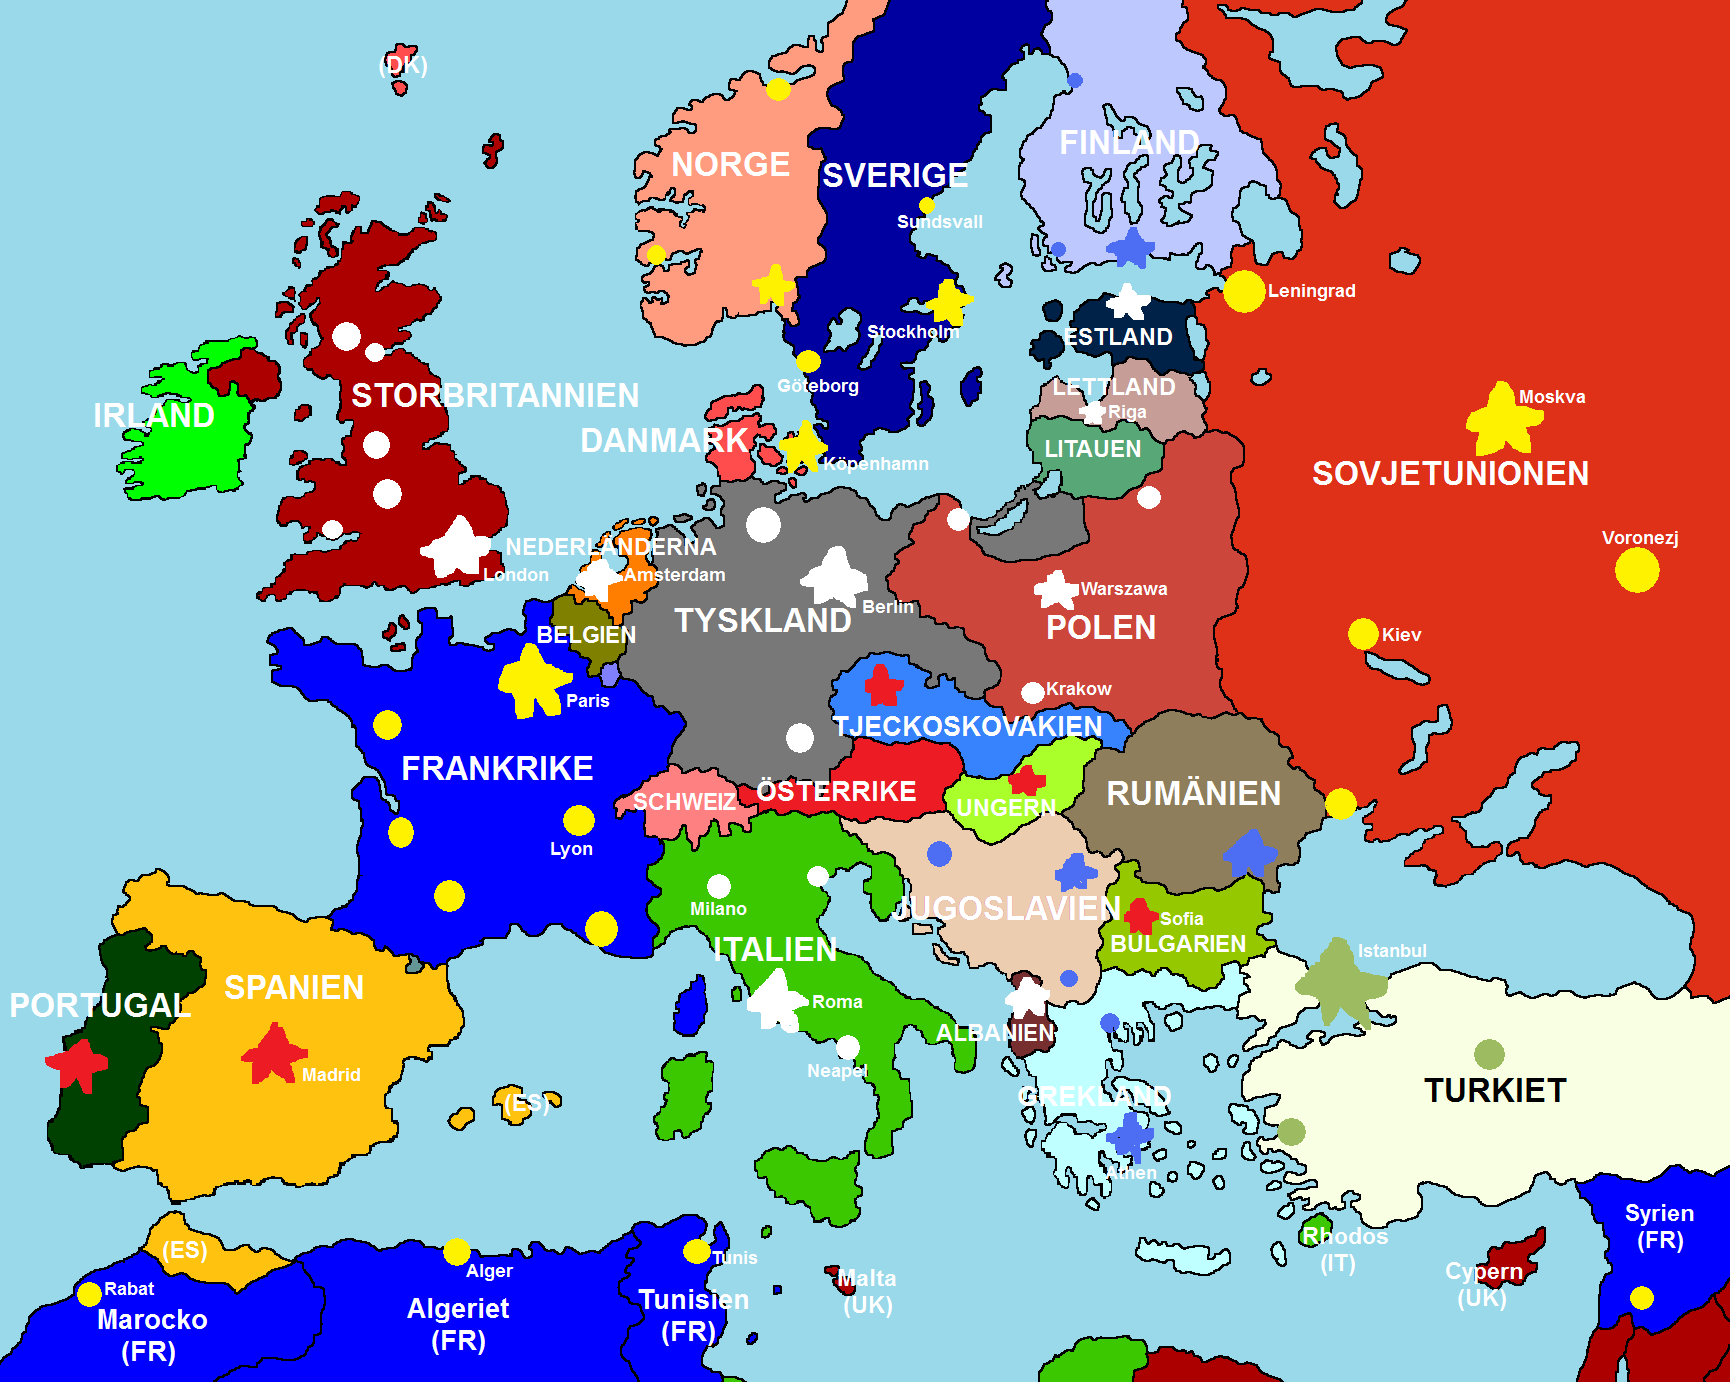 Image Map of Europe 1920 Fullmap Unfinishedpng